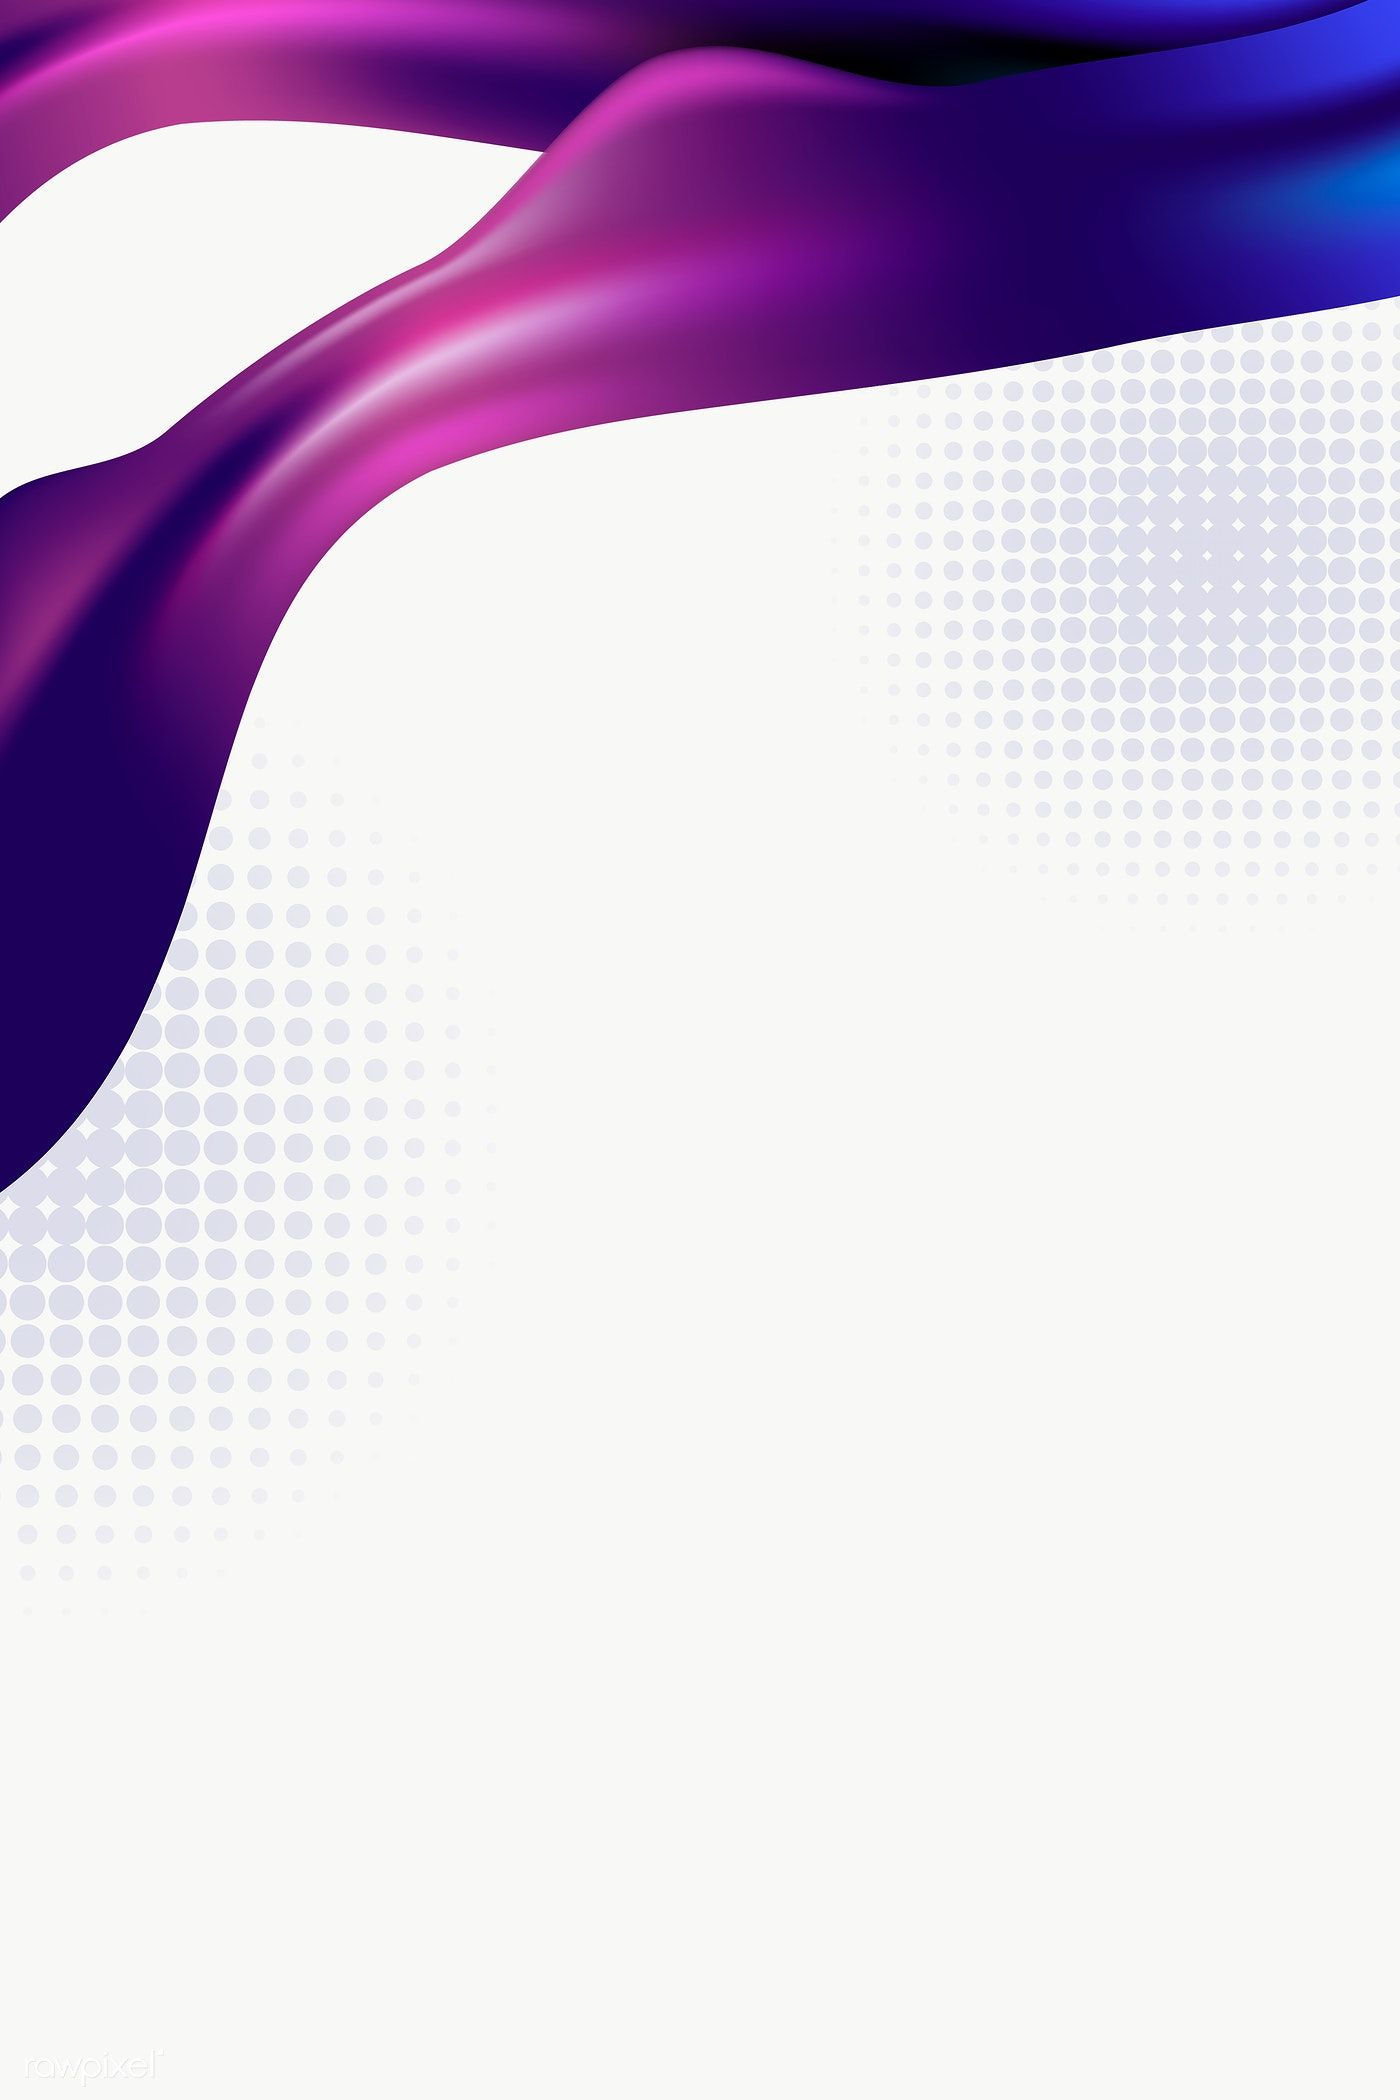 Purple Swirly Abstract Lines Design Element Free Image By Rawpixel Com Nunny Abstract Lines Design Element Abstract Line Art